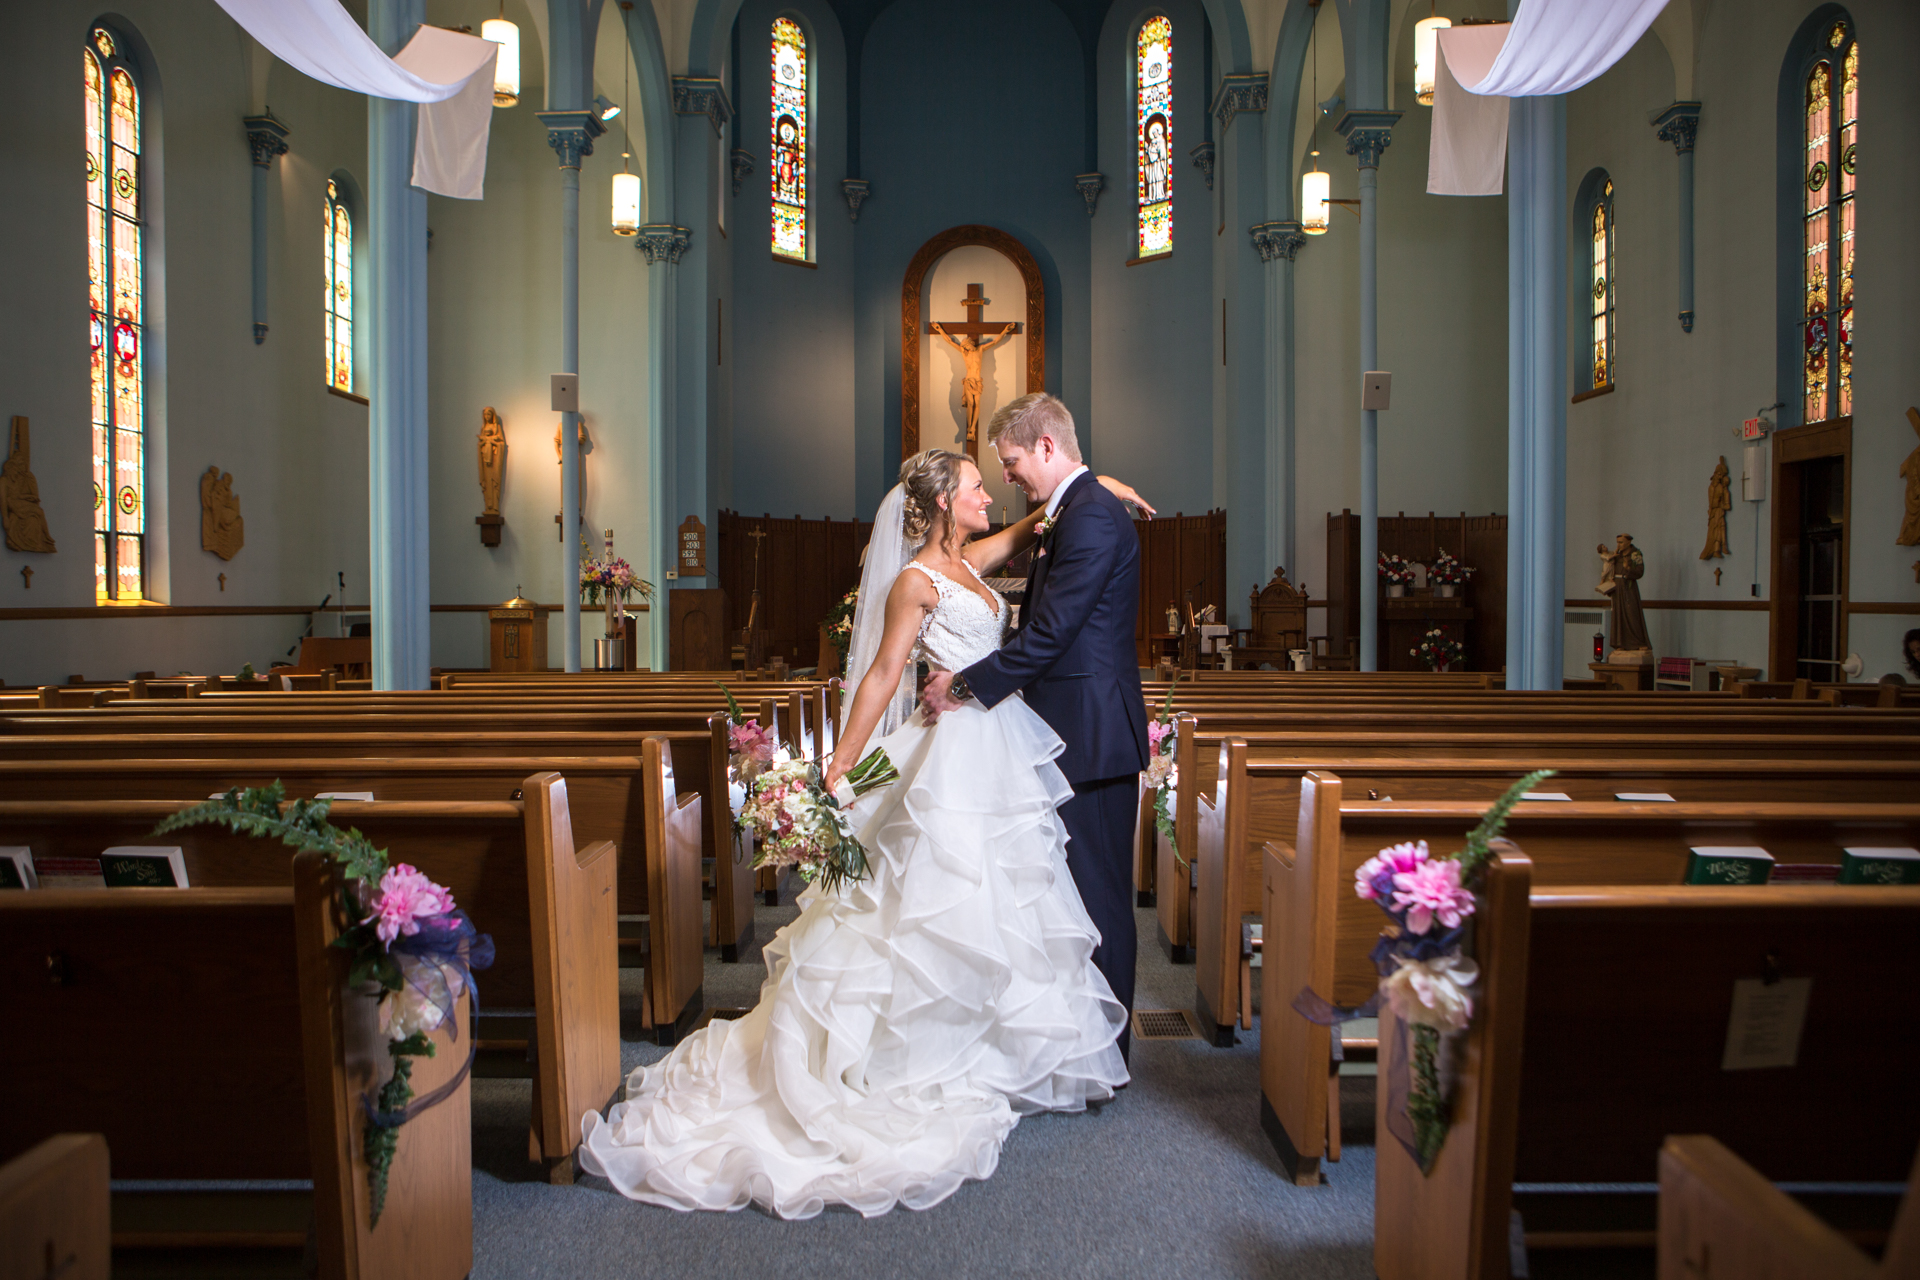 St. Patrick Catholic Church Minonk Packard Plaza Peoria Bloomington Normal Illinois Wedding Photographer Photographers Peoria Riverfront-001.jpg